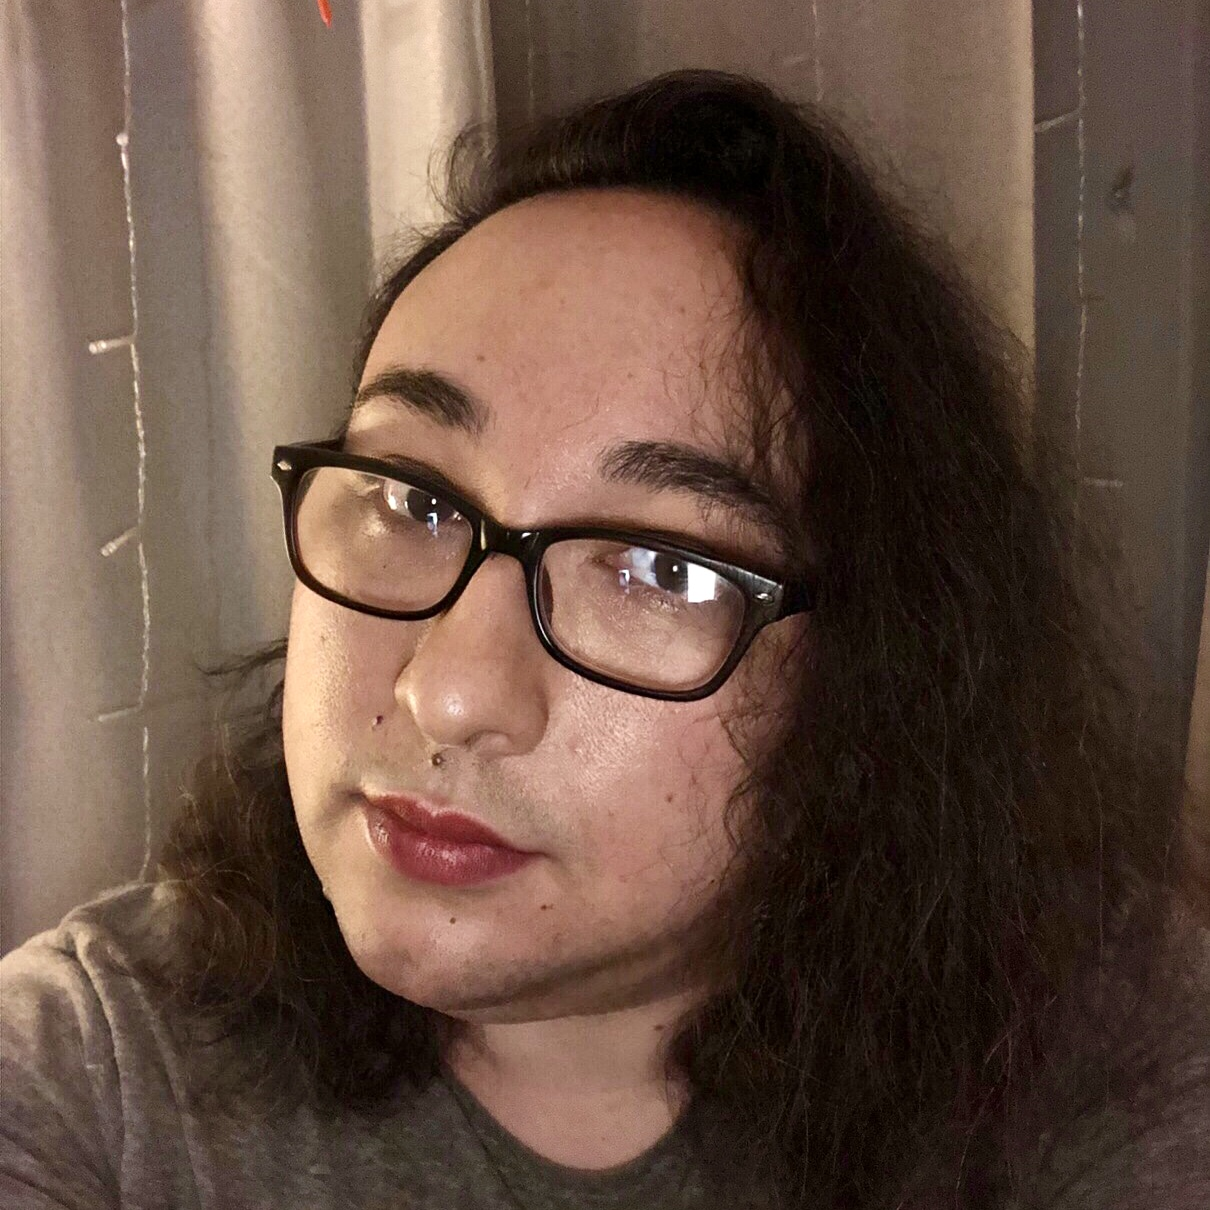 A selfie of Doryen Chin, a mixed-race Asian-American woman taken indoors at night. She has shoulder length dark hair, parted on the side, dark rectangular glasses, and wears dark red lipstick, and gazes at the viewer with a slight smile.